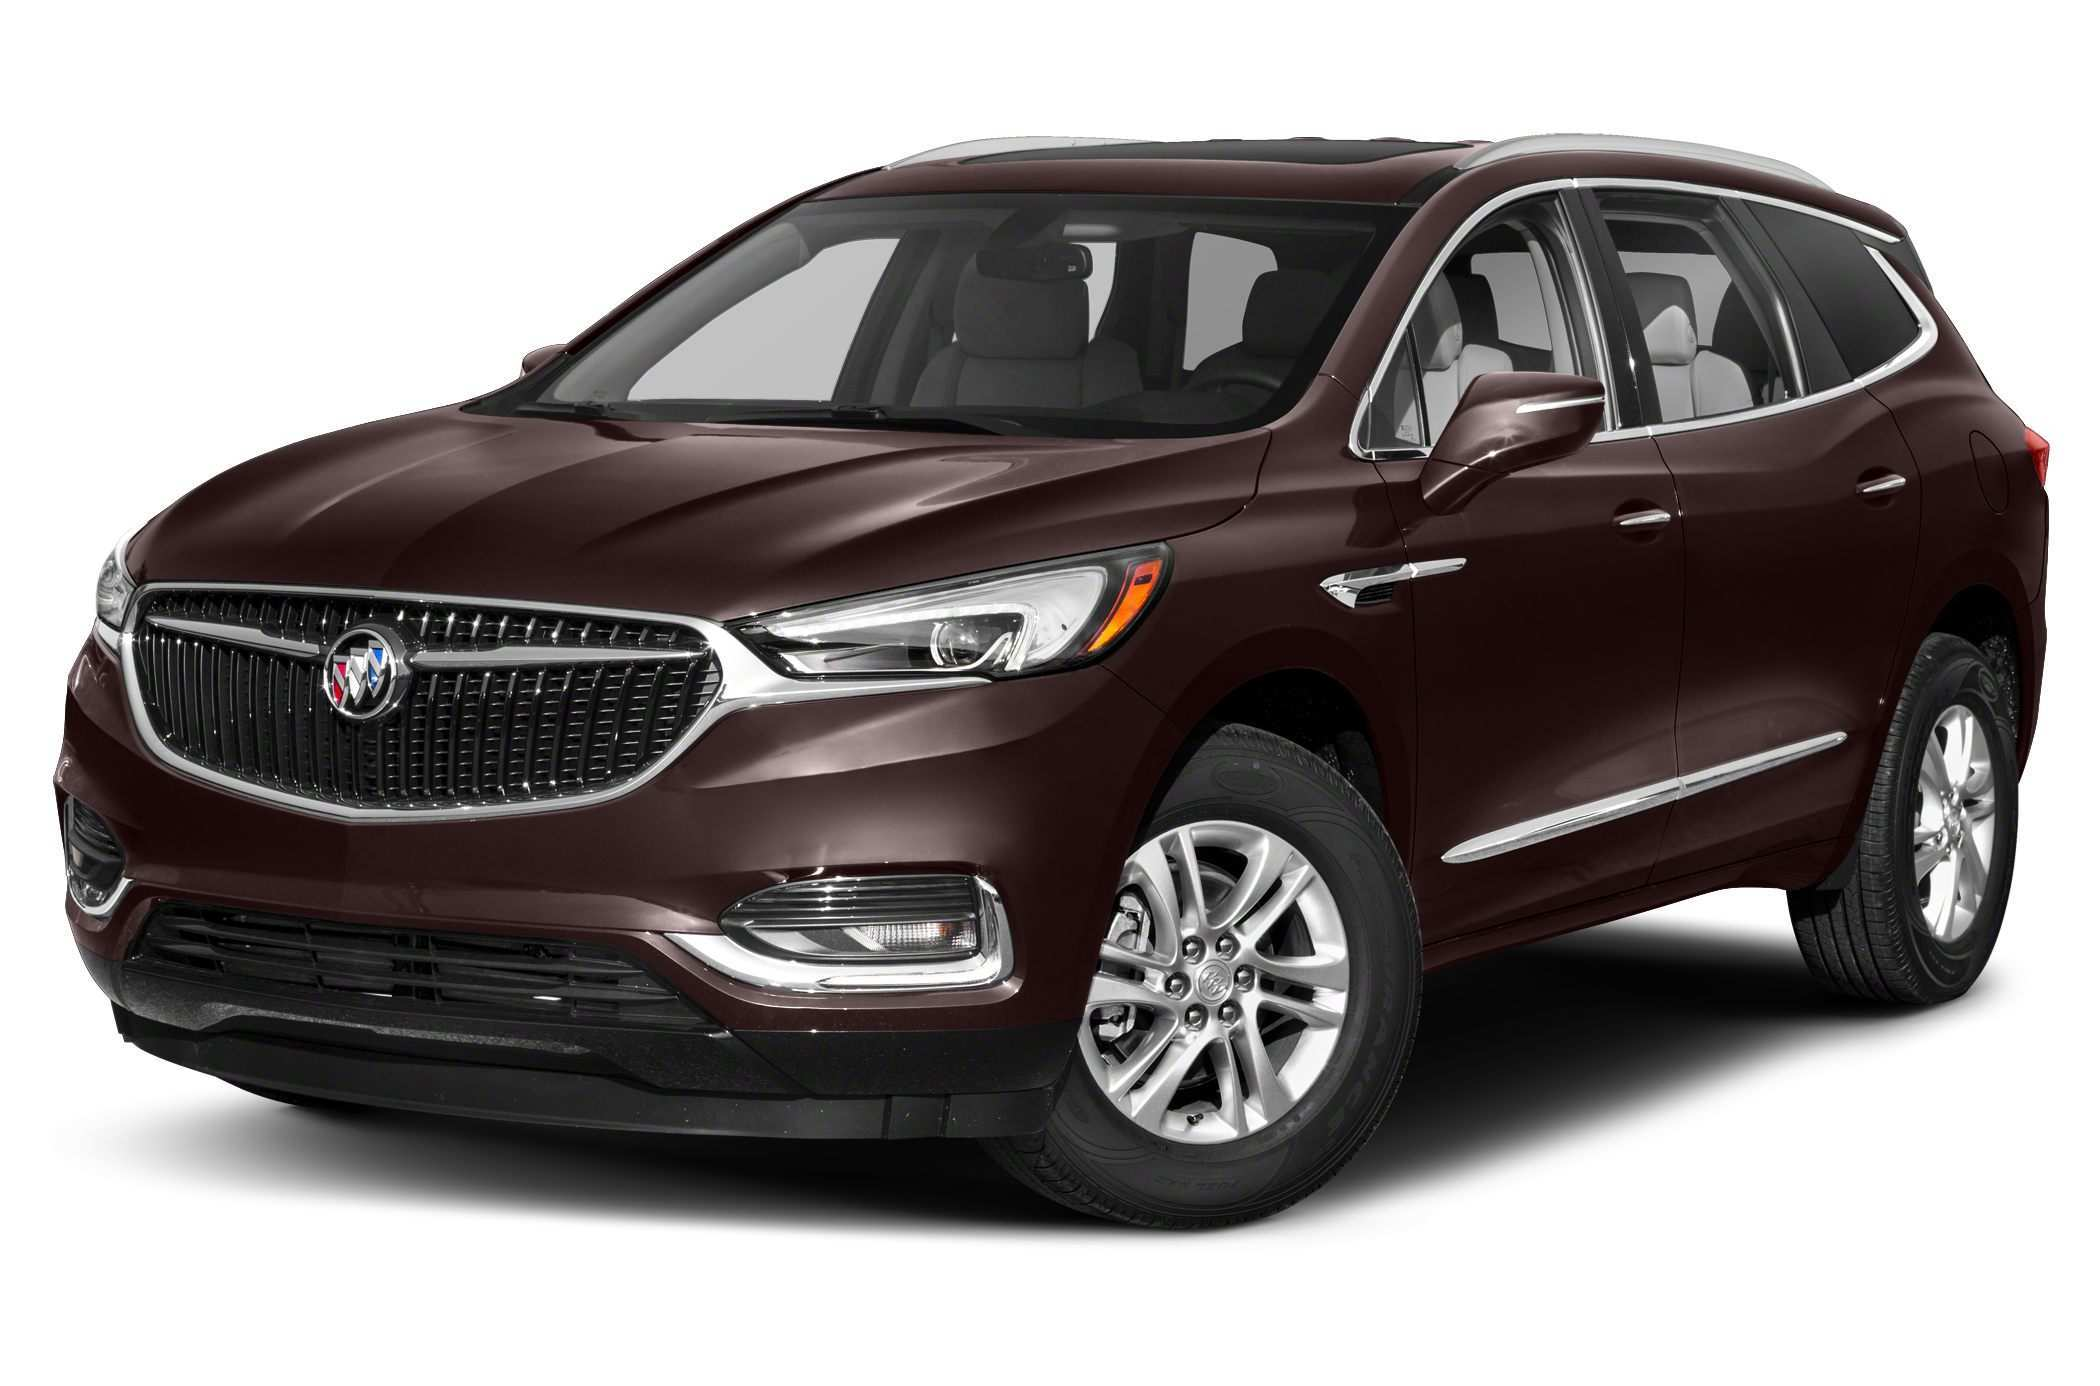 72 Best Review 2019 Buick Enclave Release Date for 2019 Buick Enclave